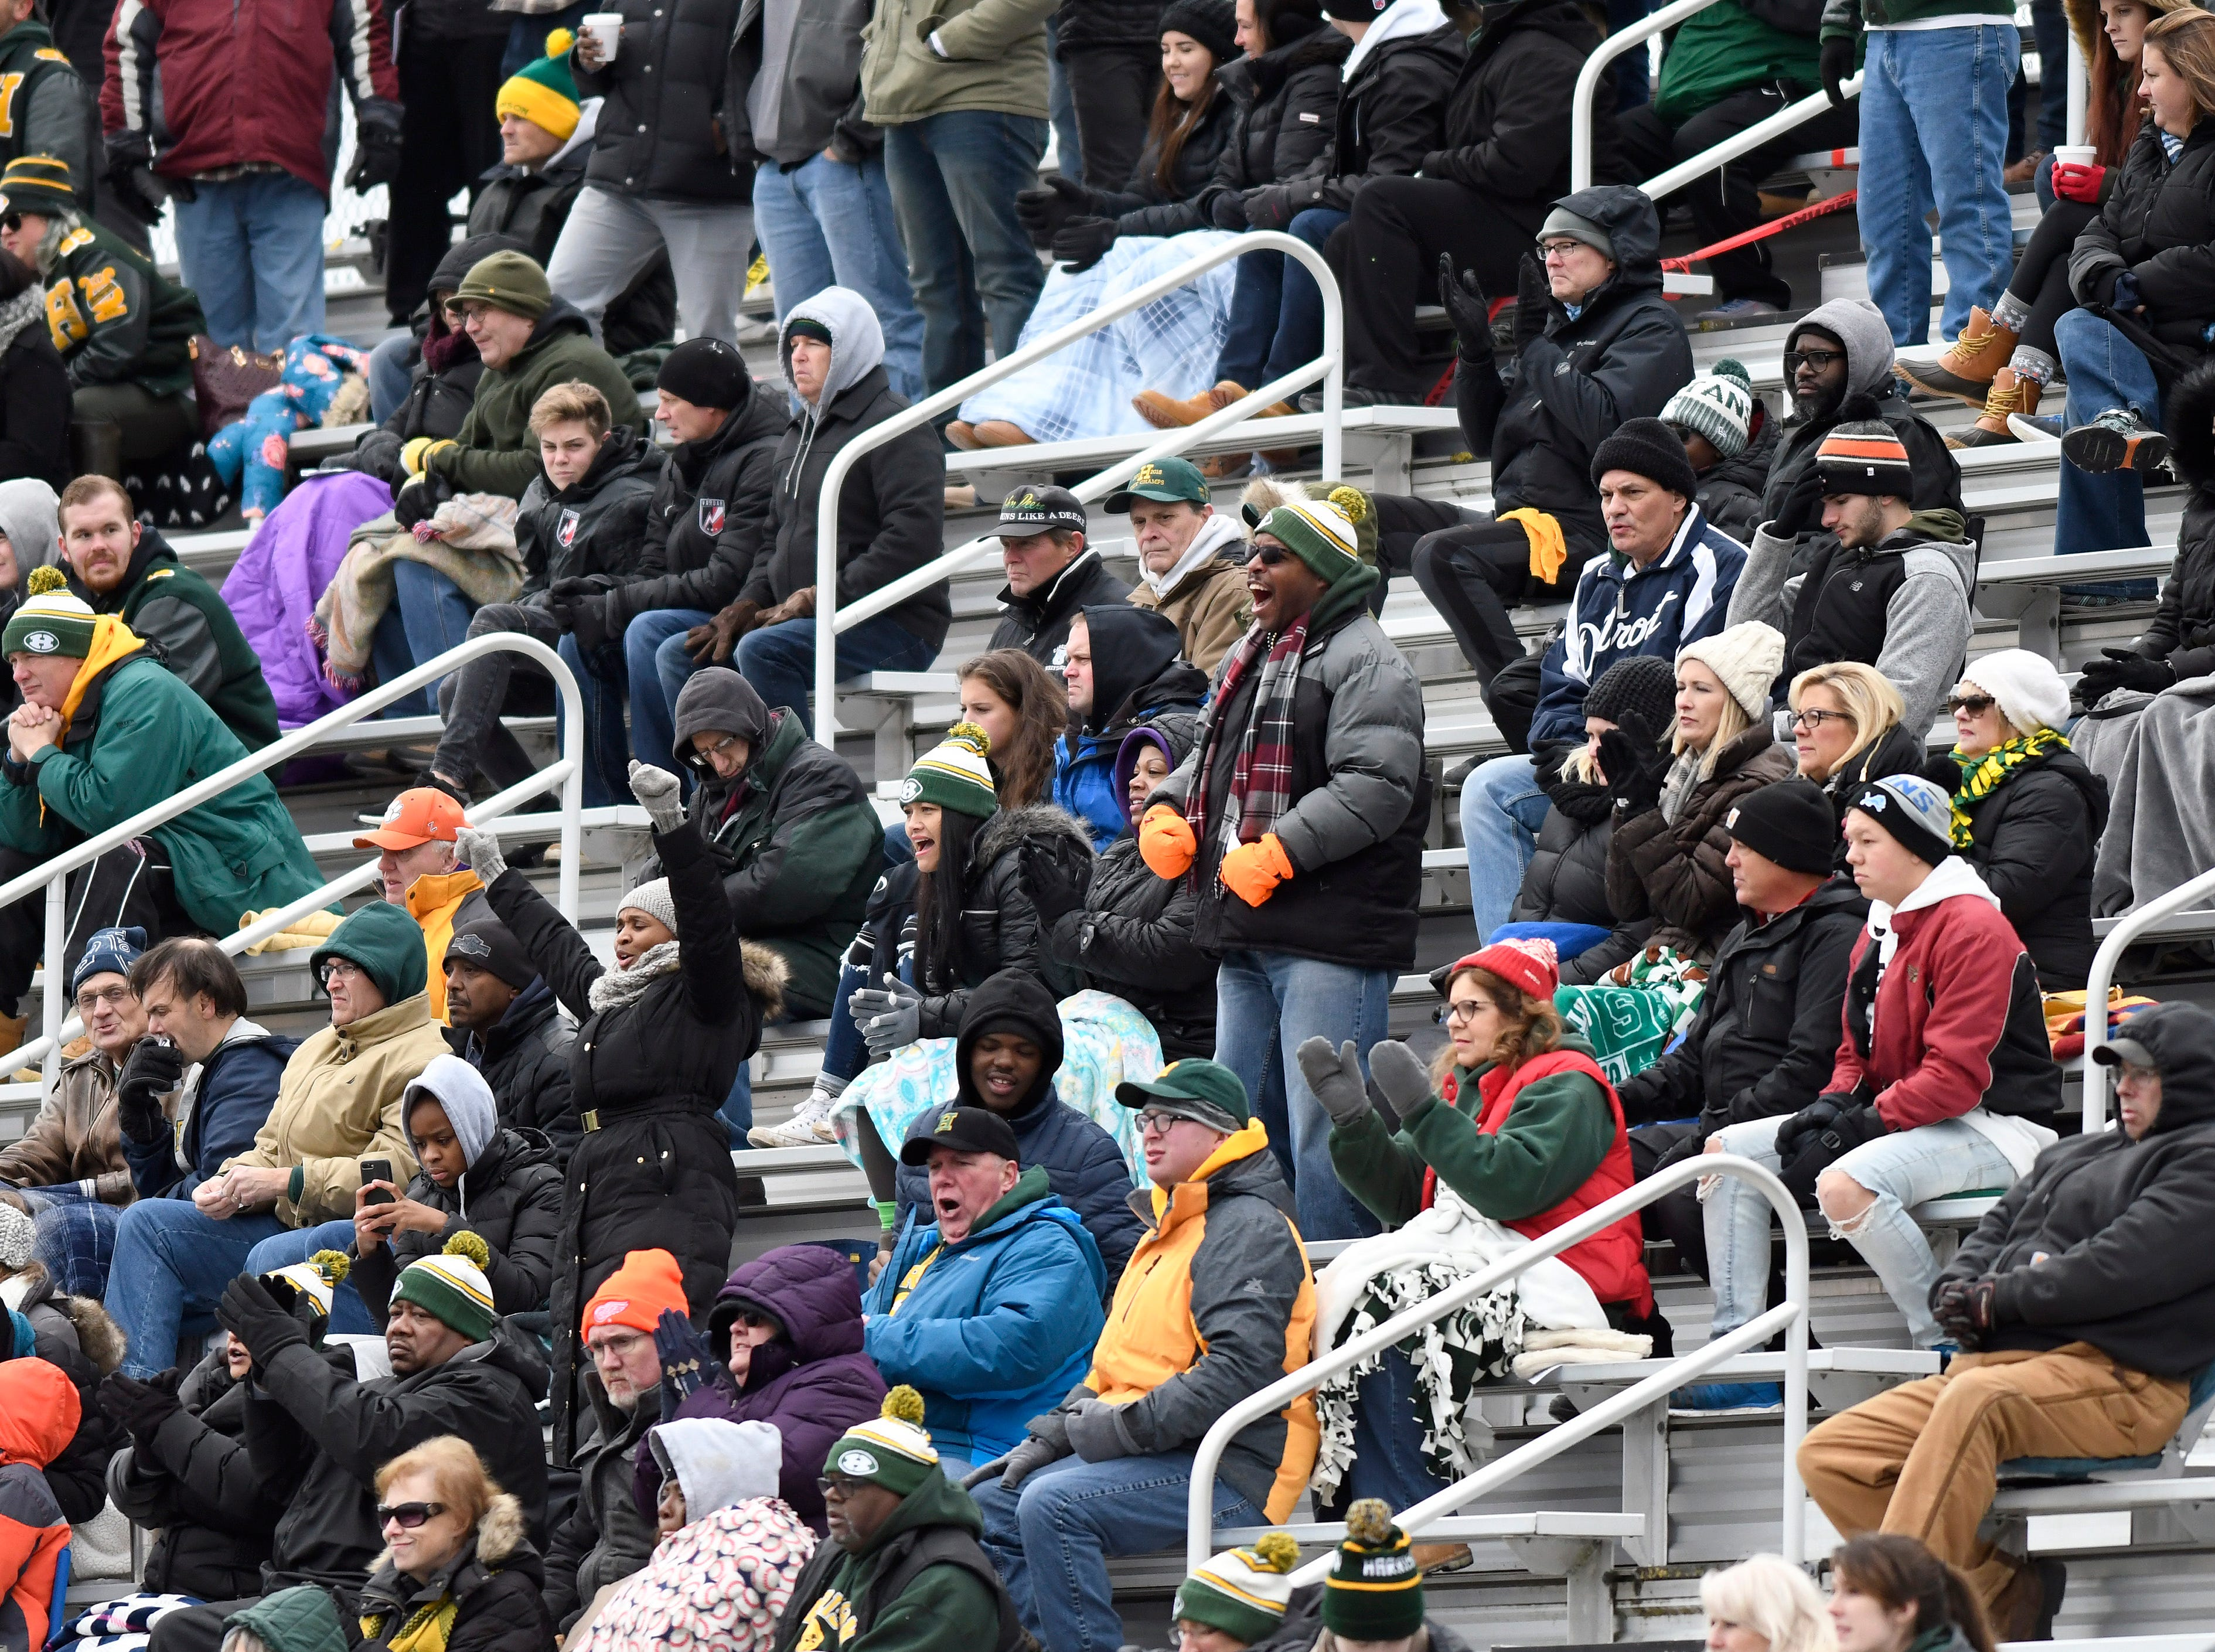 Farmington Hills Harrison fans are bundled up for the cold weather as they cheer on their team against Chelsea in the first quarter.